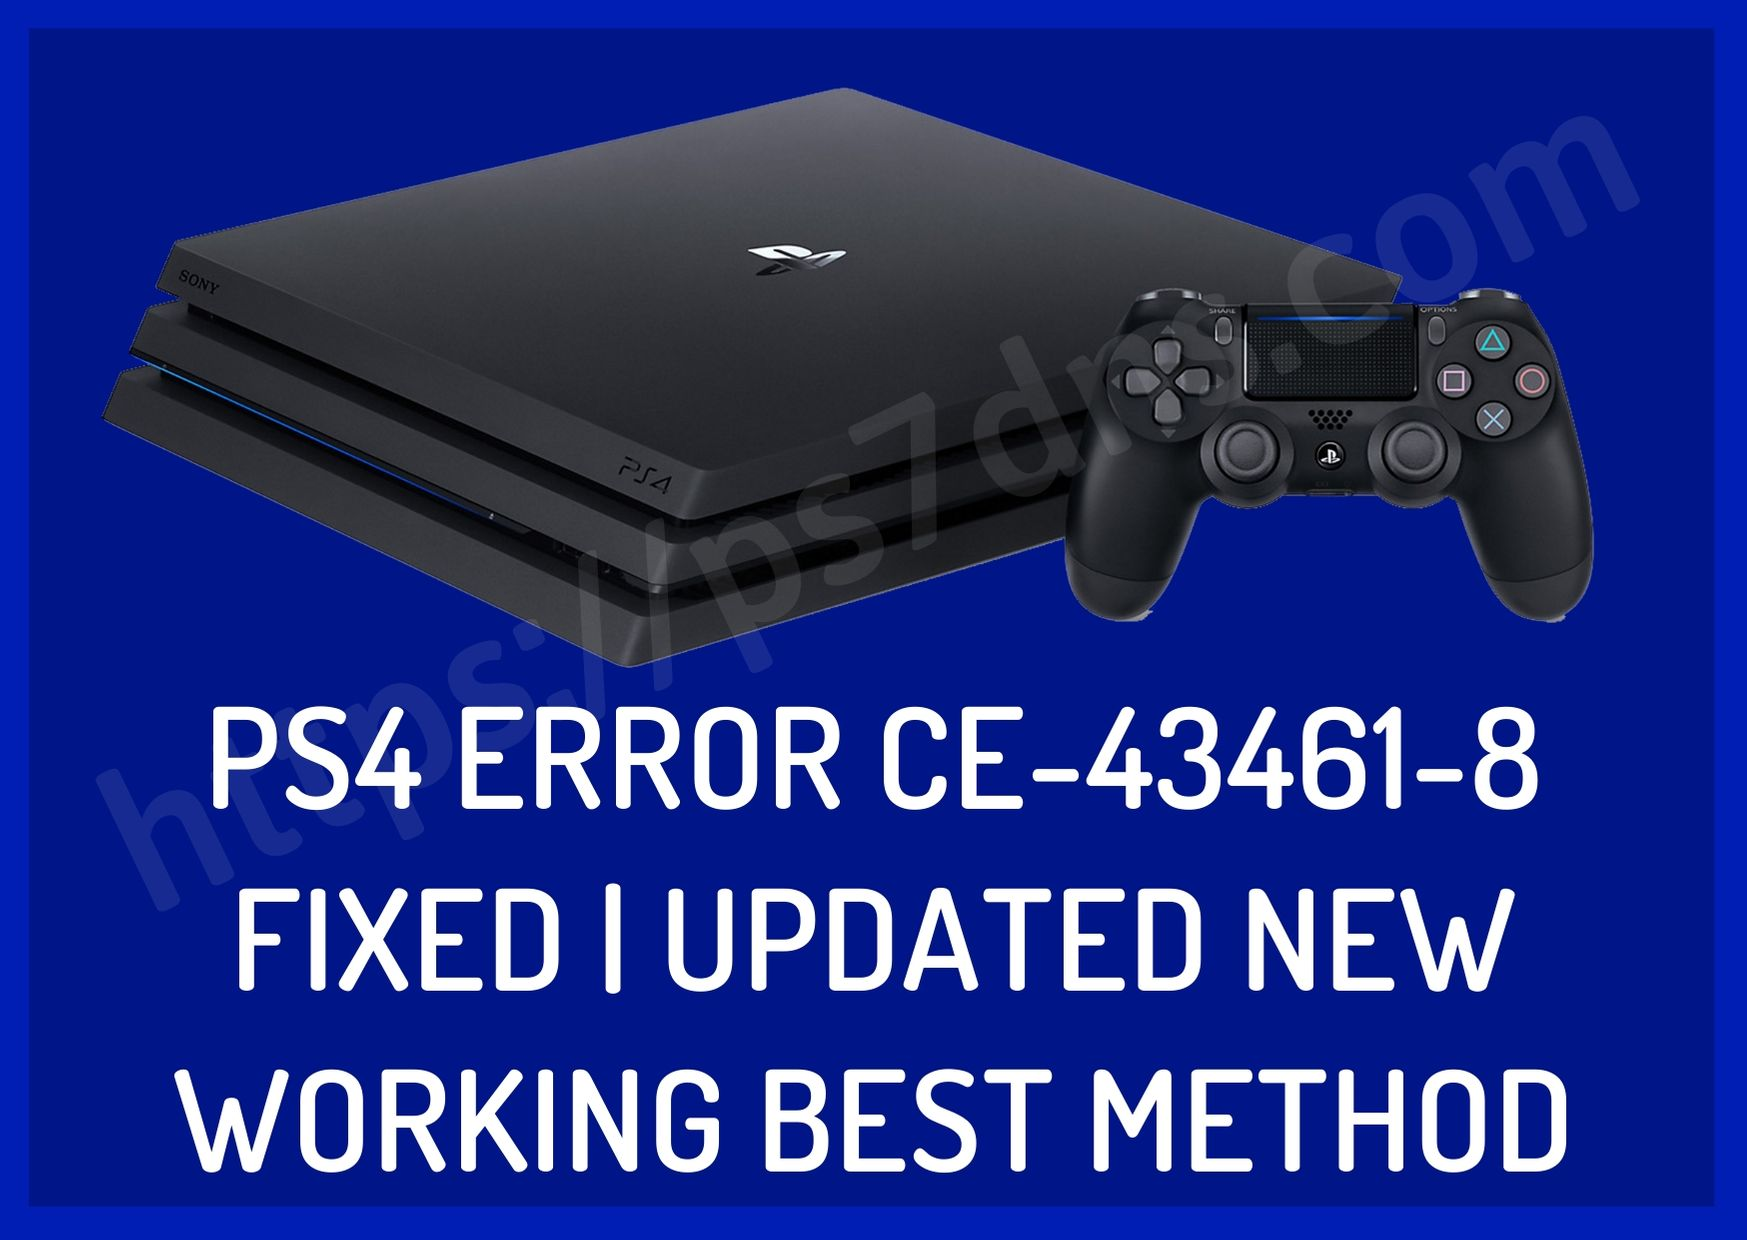 PS4 Error CE-43461-8 fixed | Updated New Working Best Method